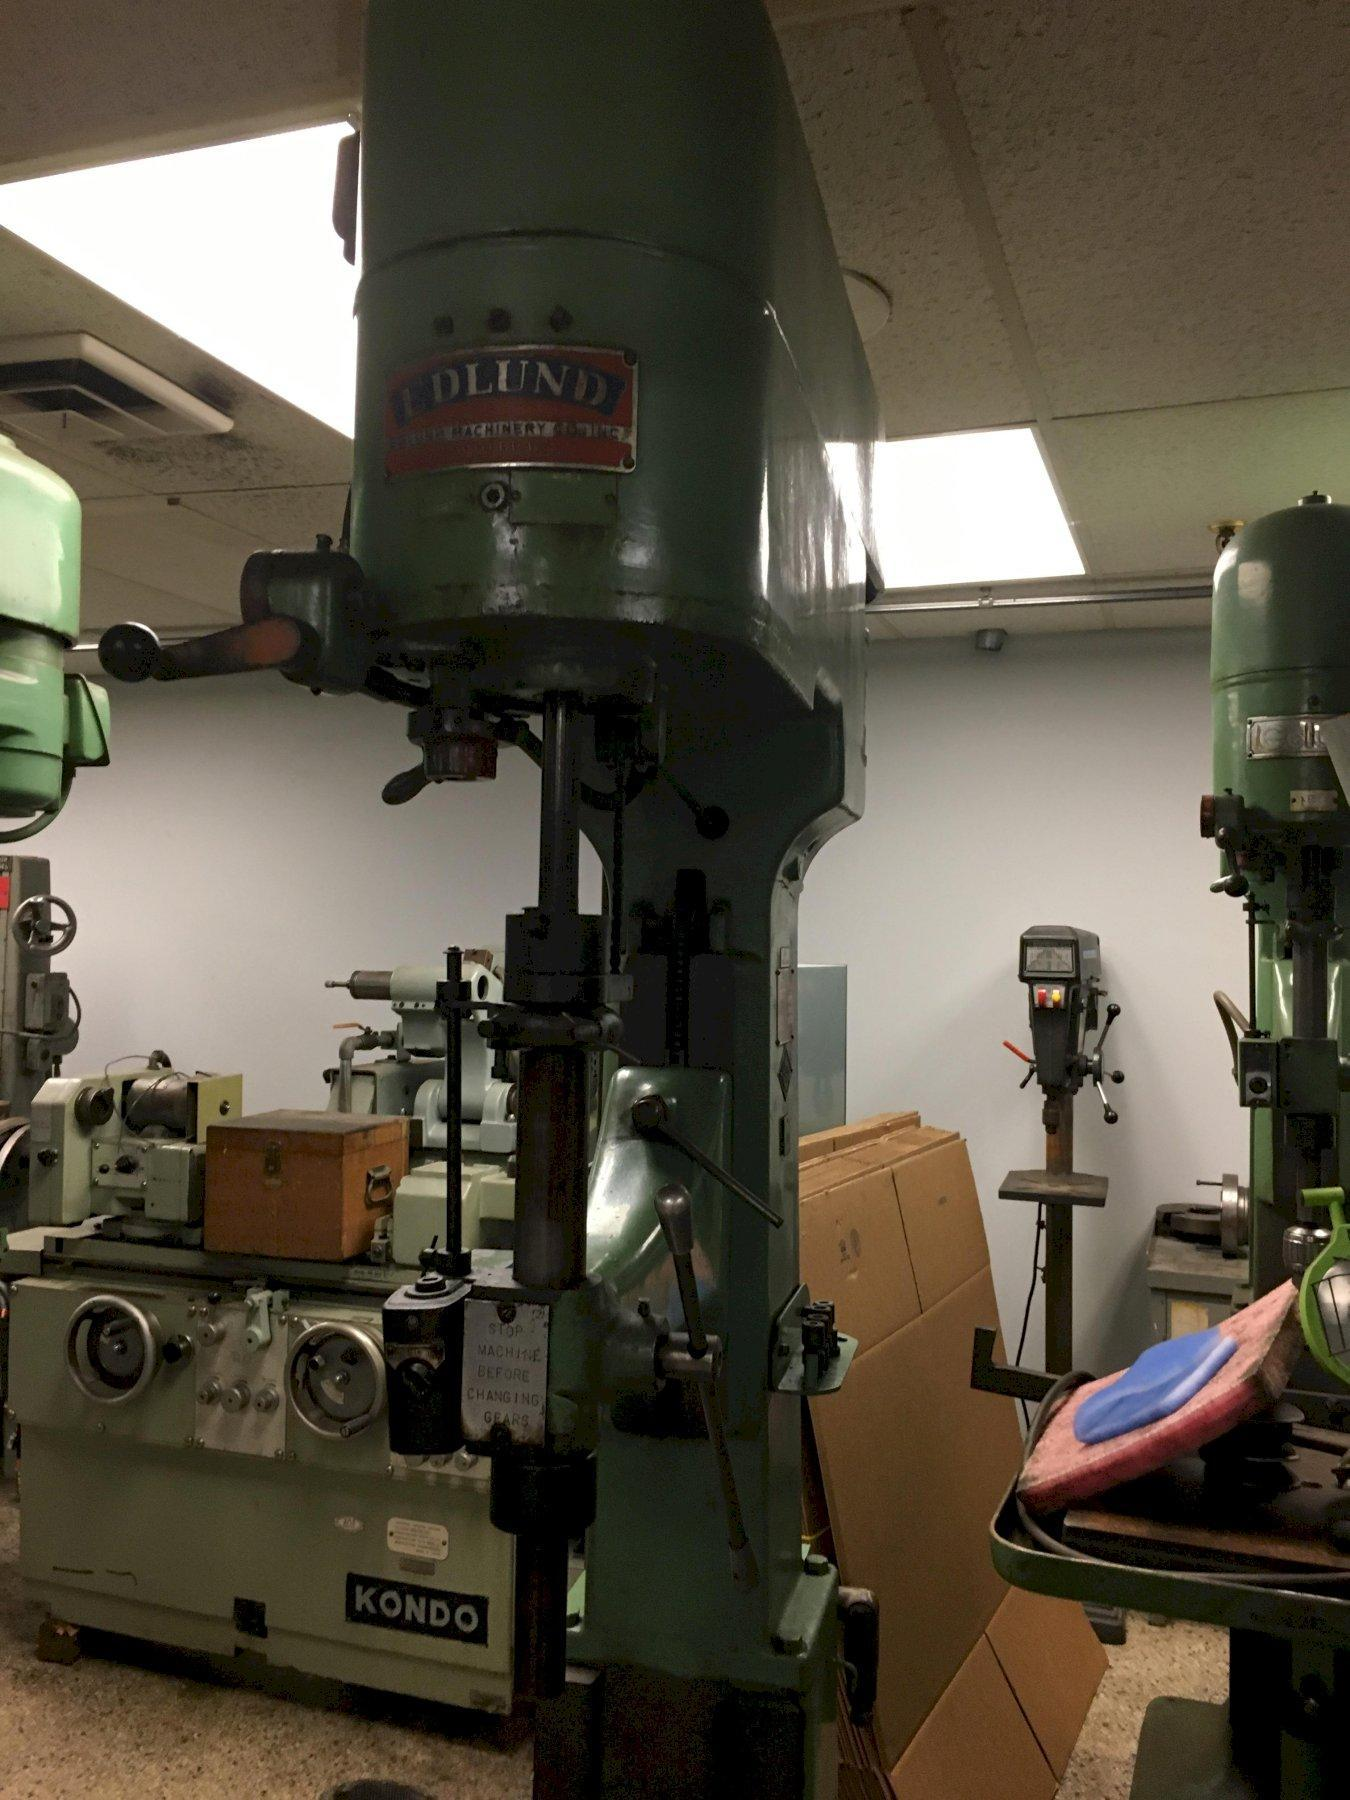 Edlund Model 2F-15 Drill Press, S/N 522, with Motor Reversing Tapping Attachment.